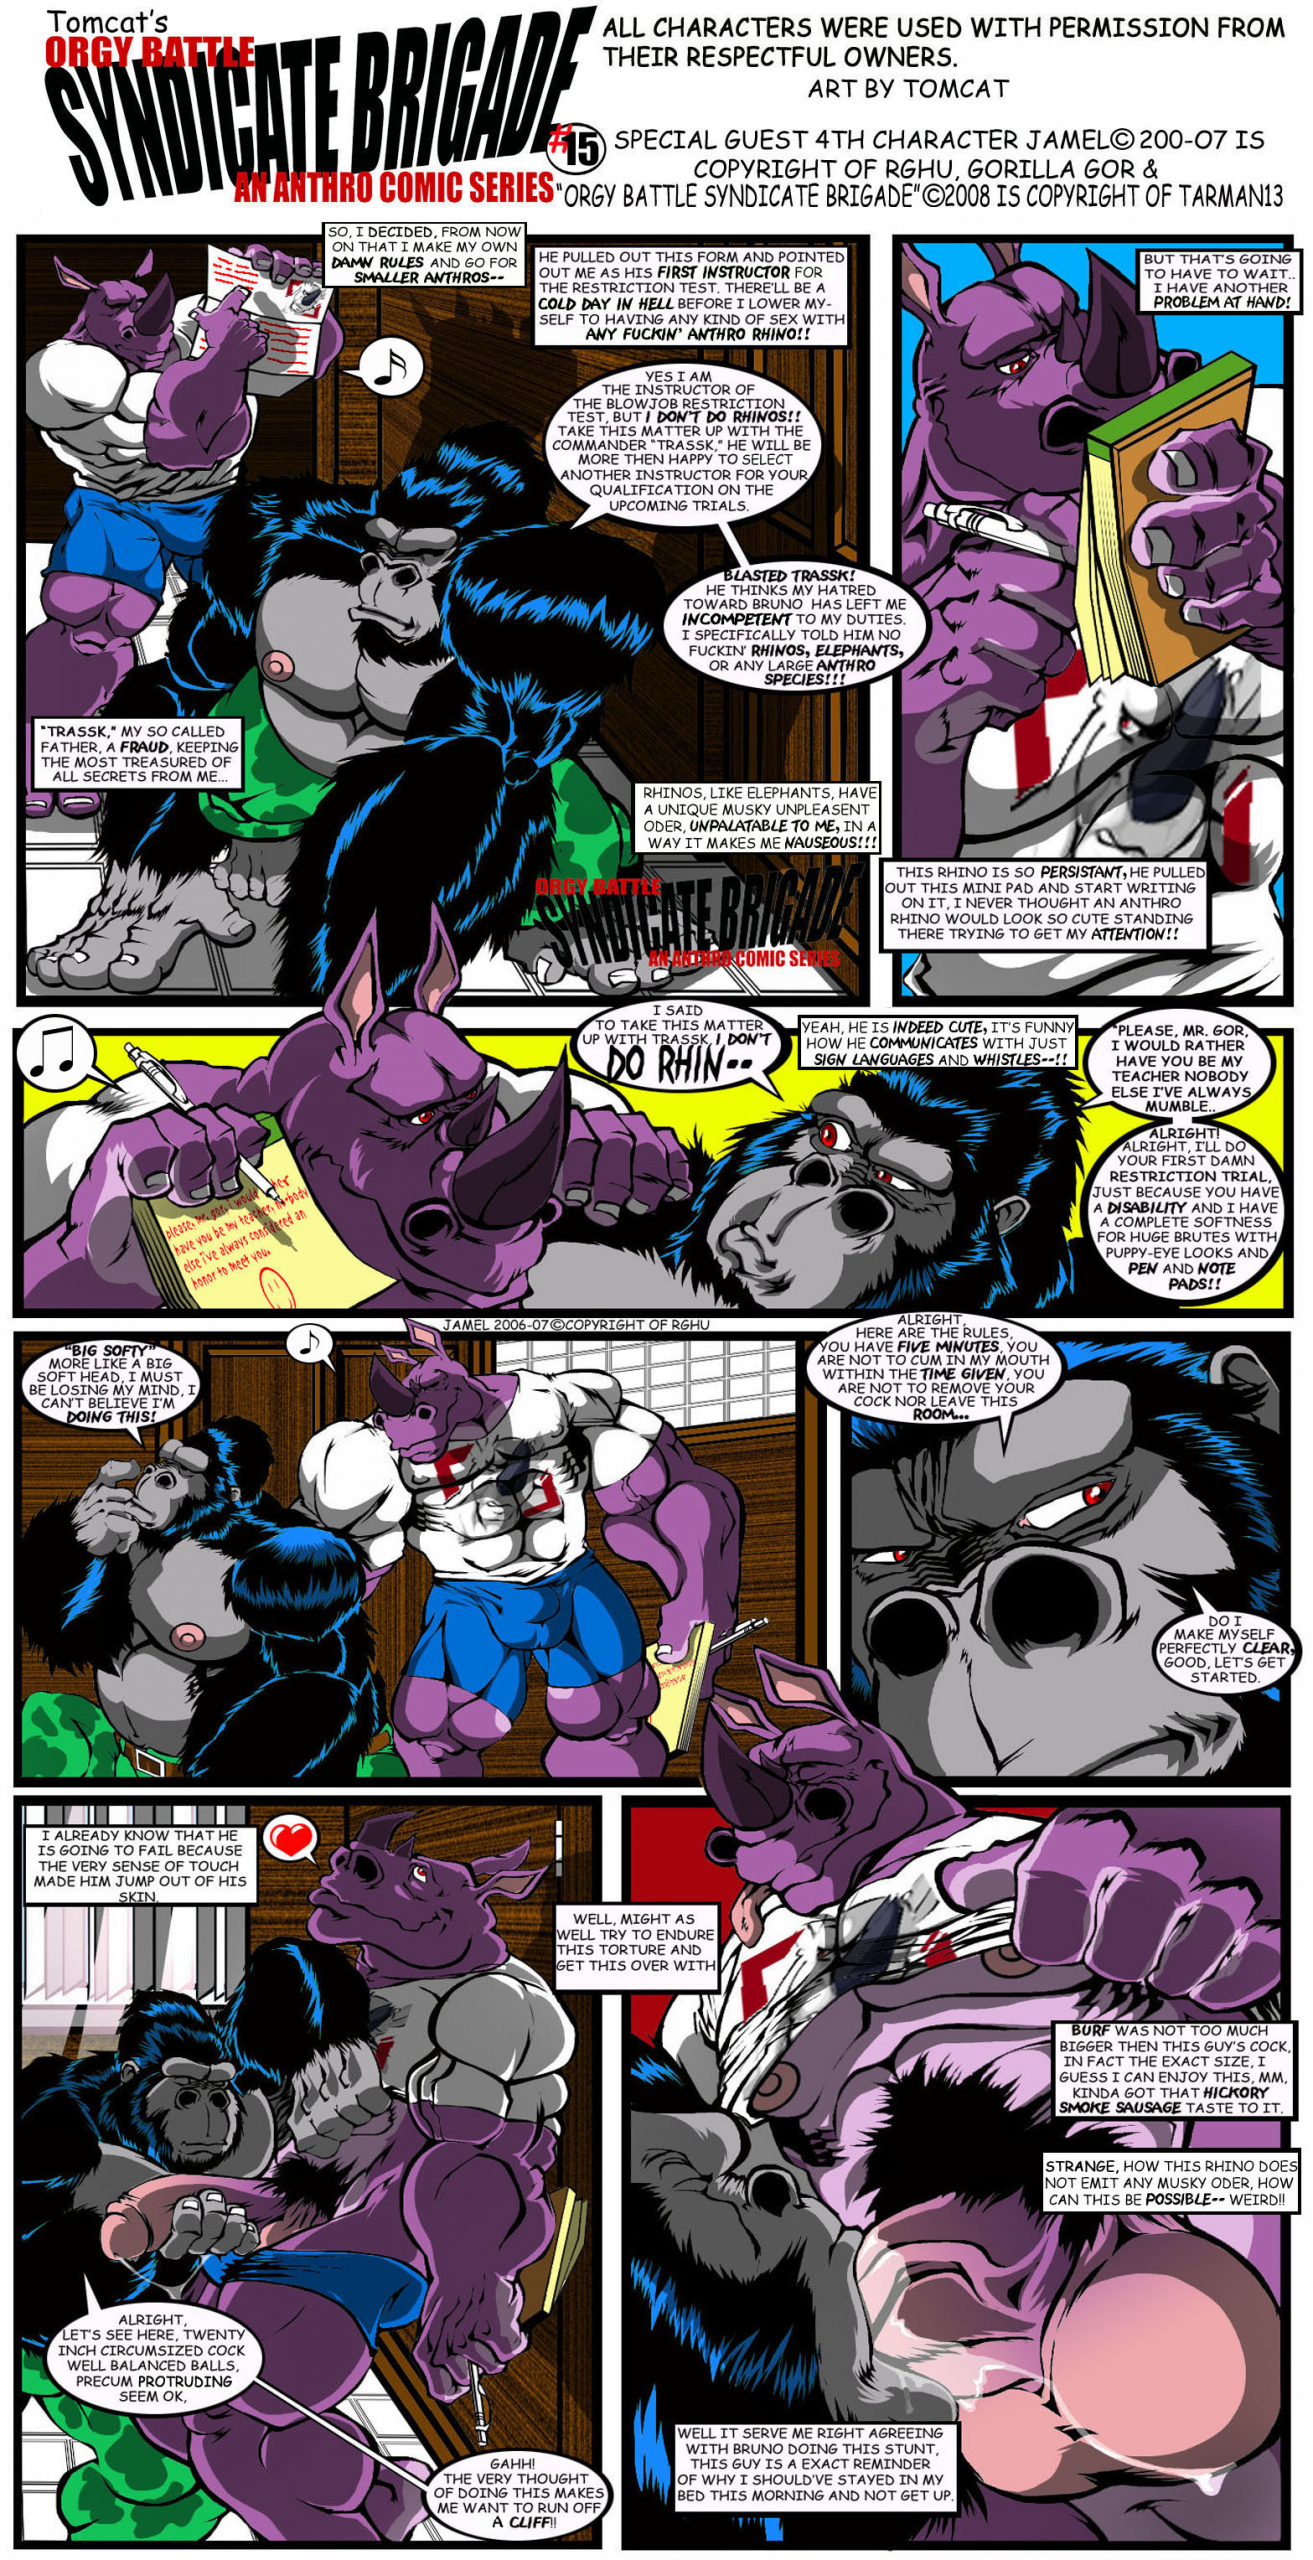 168105_Tomcat_syndicate_comic_page_15